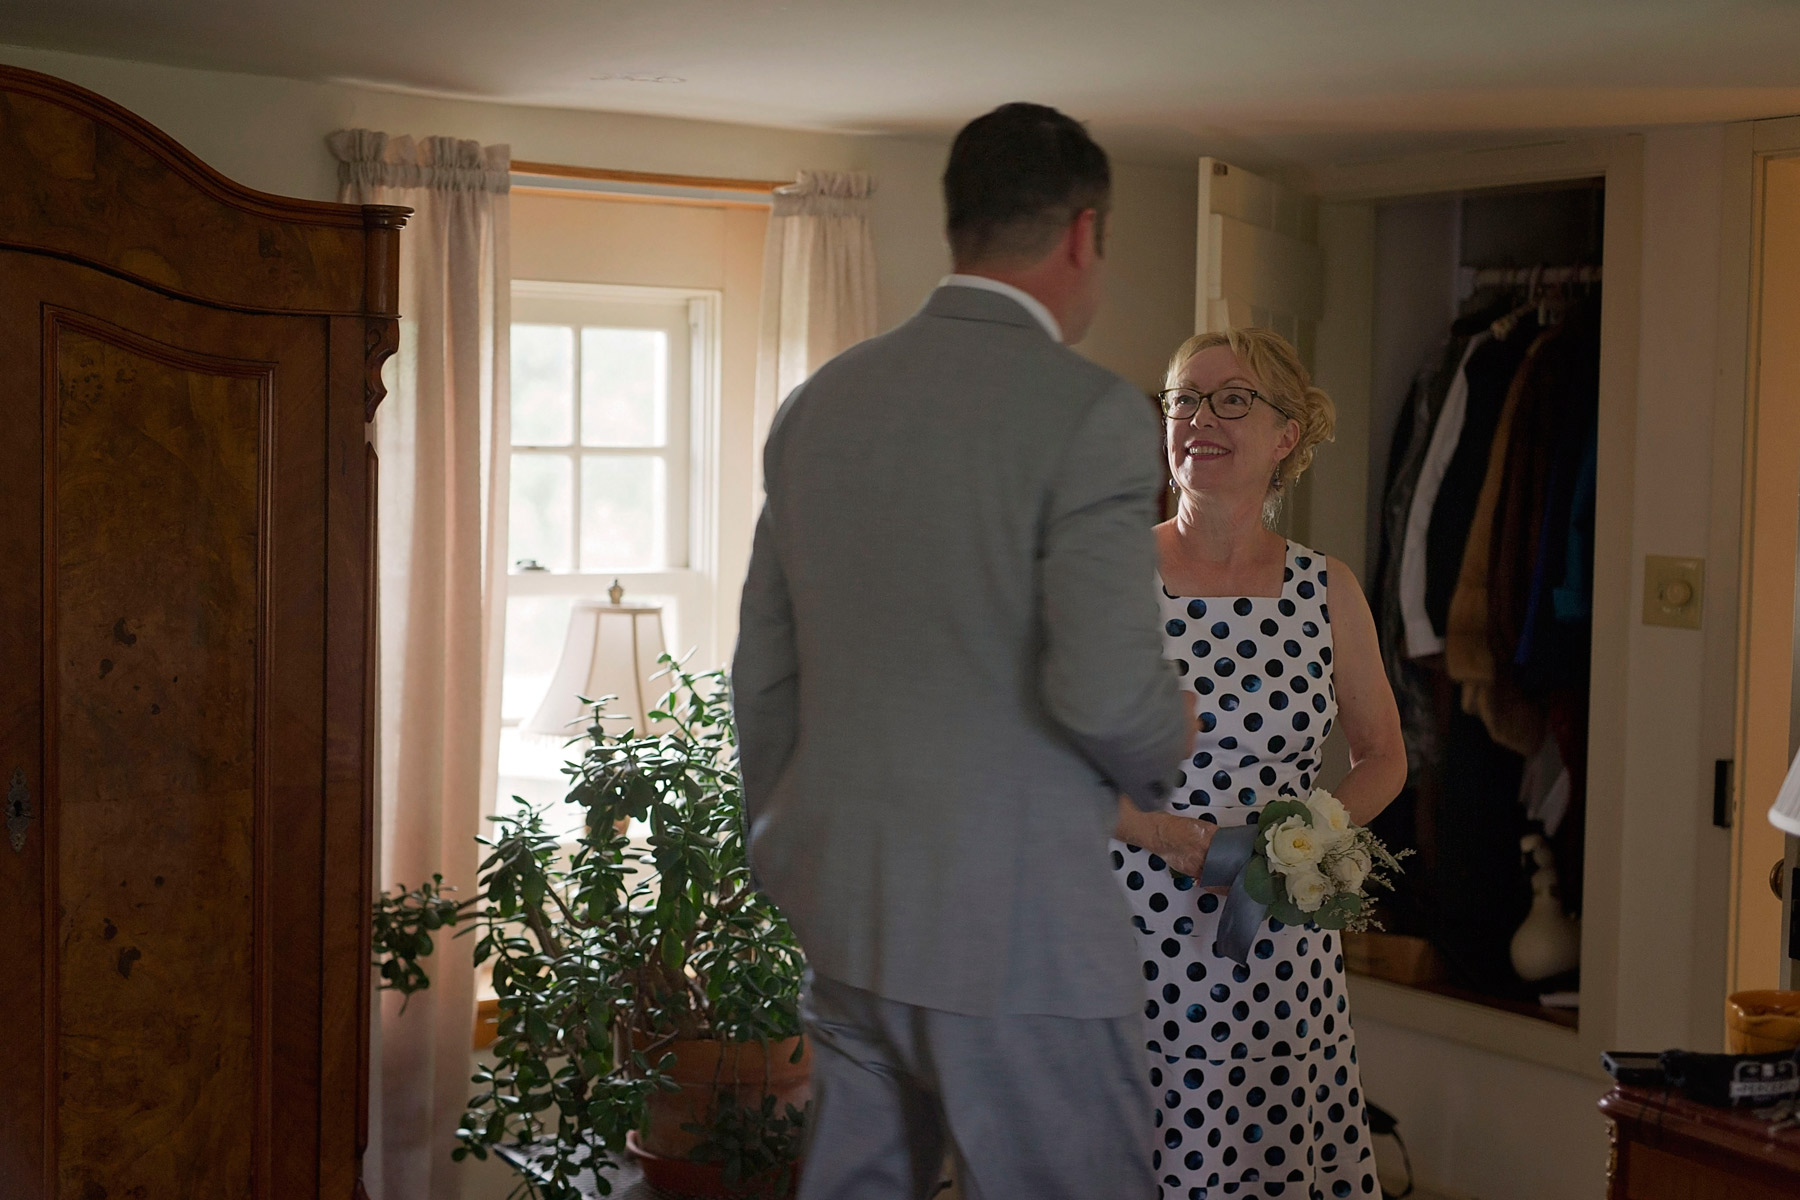 Groom and stepmother share a glance before wedding ceremony begins